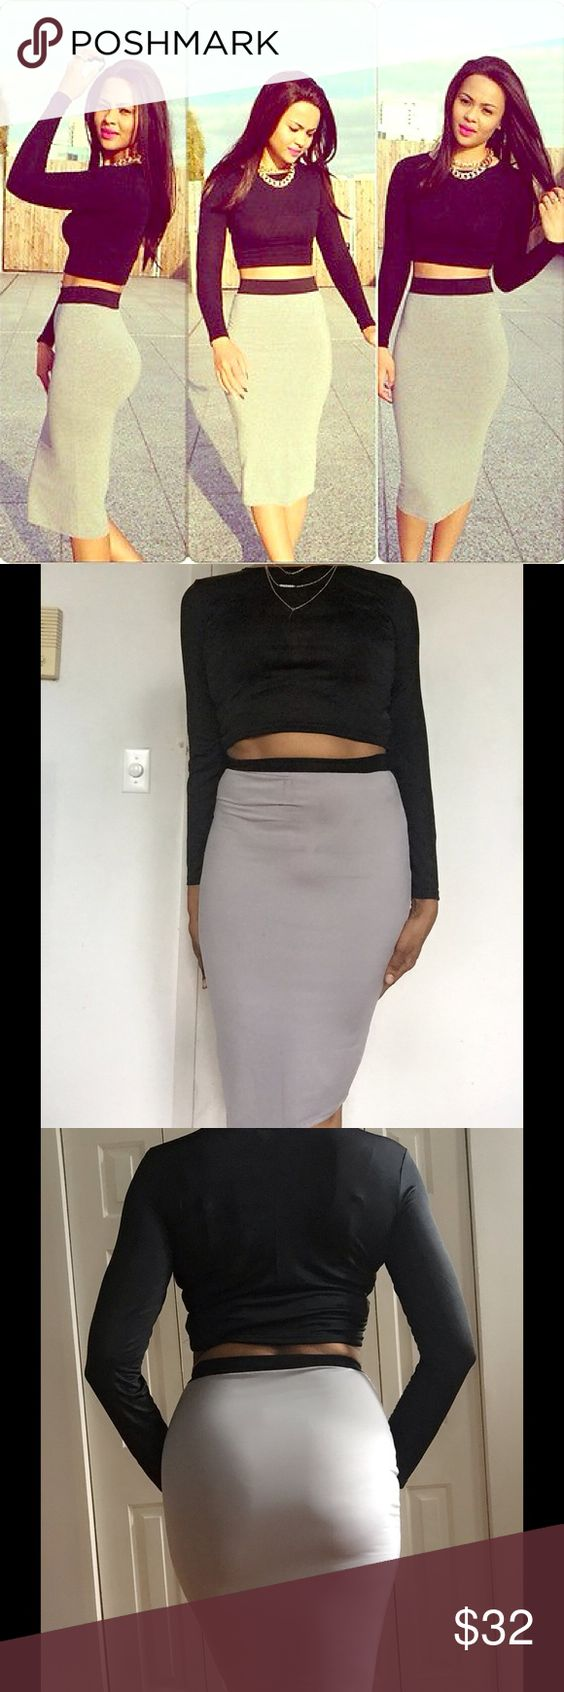 2 PIECE BLK/GRAY CROP TOP BODY CON DRESS  2 piece black/gray crop top bodycon dress. Cute two piece outfit, great value. Black crop top, paired with a fitted gray skirt, skirt has black band at waist. Imported, 100% polyester. Sizes, M/L available. M skirt 25 ins long, 17 ins wide. L skirt 26 ins long, 18 ins wide. M, top 15 ins long, 16 ins underarm-underarm, 22 in sleeve. L, top 16 ins long, 18 ins wide, 23 1/2 in sleeve. Reasonable offers/bundles welcome, no trades. Please make any…